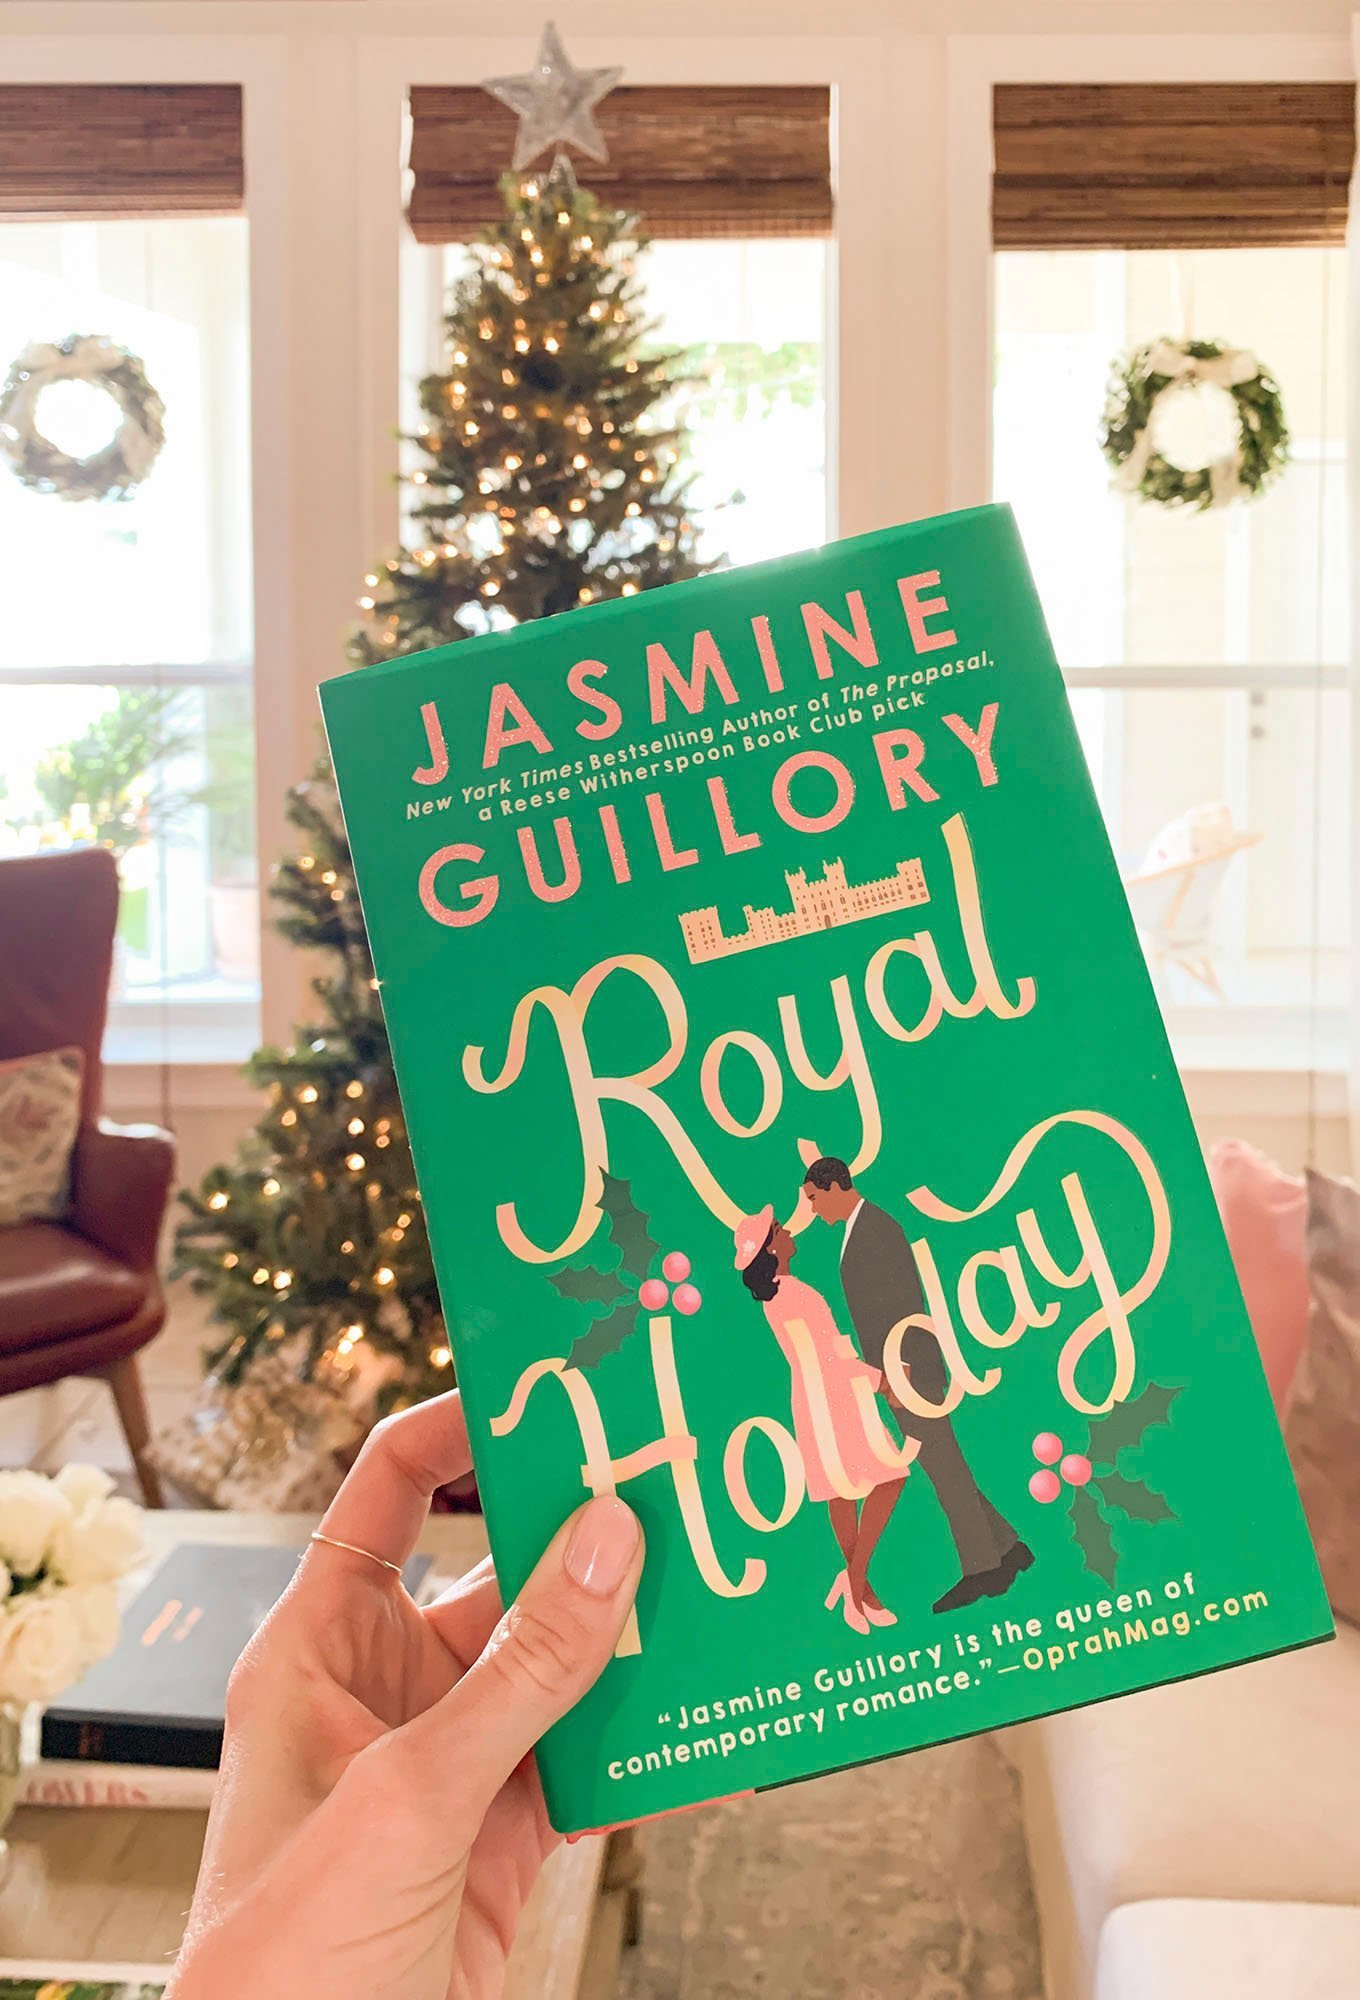 Discussion: Royal Holiday